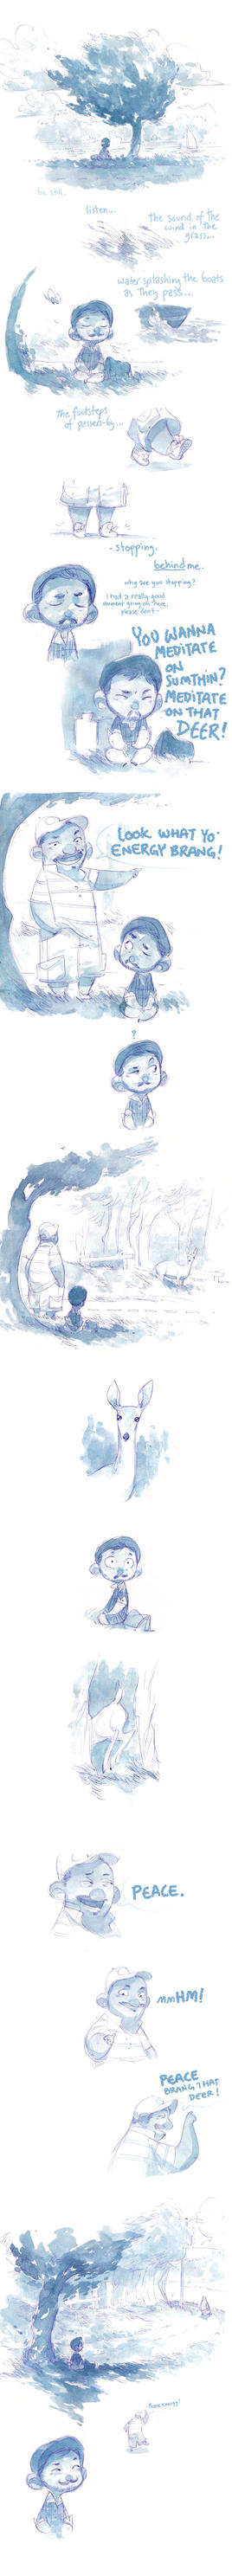 Watercolor Comic - Peace Energy by nicholaskole